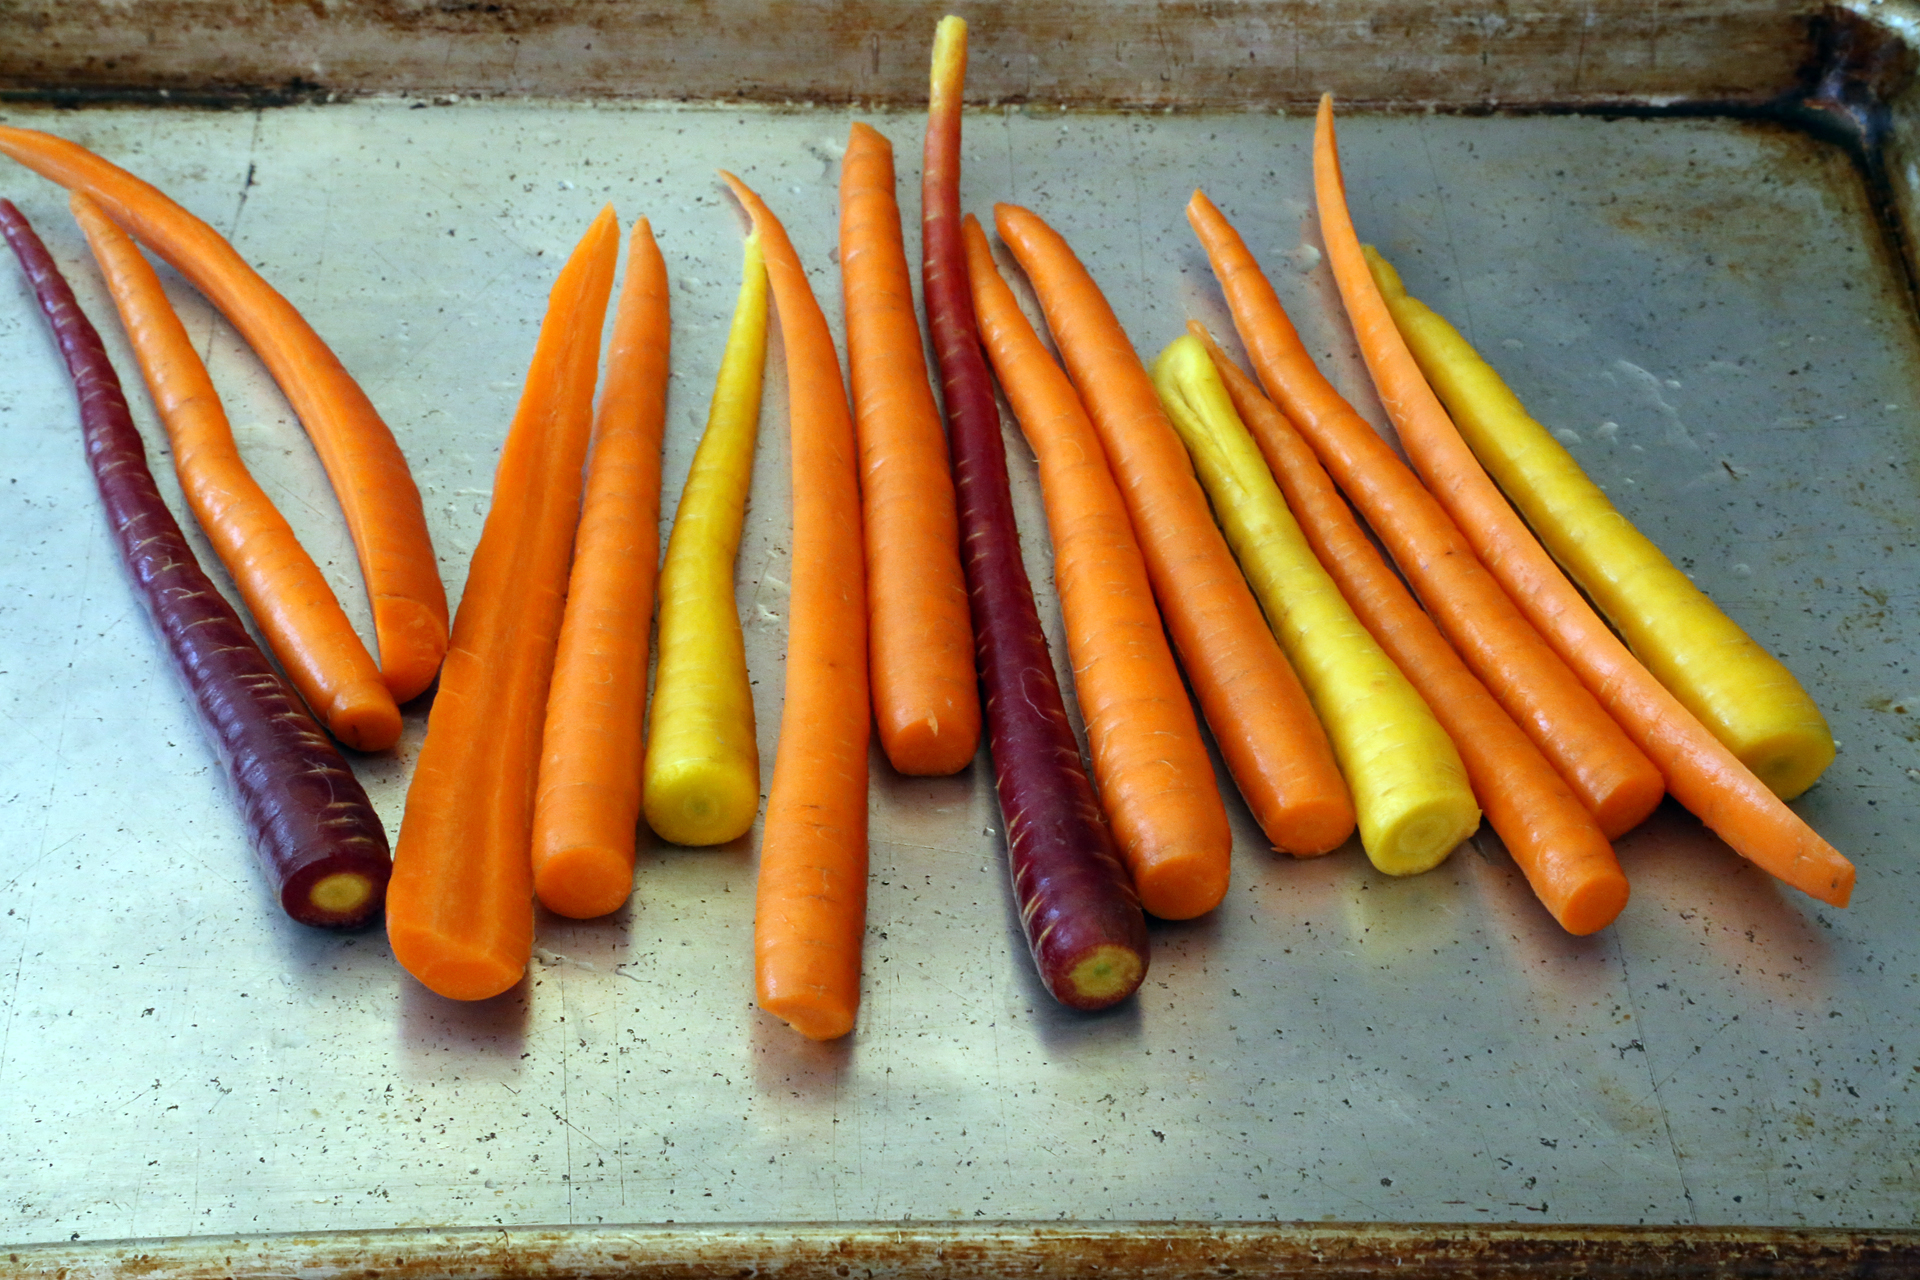 Heirloom carrots in a variety of colors.